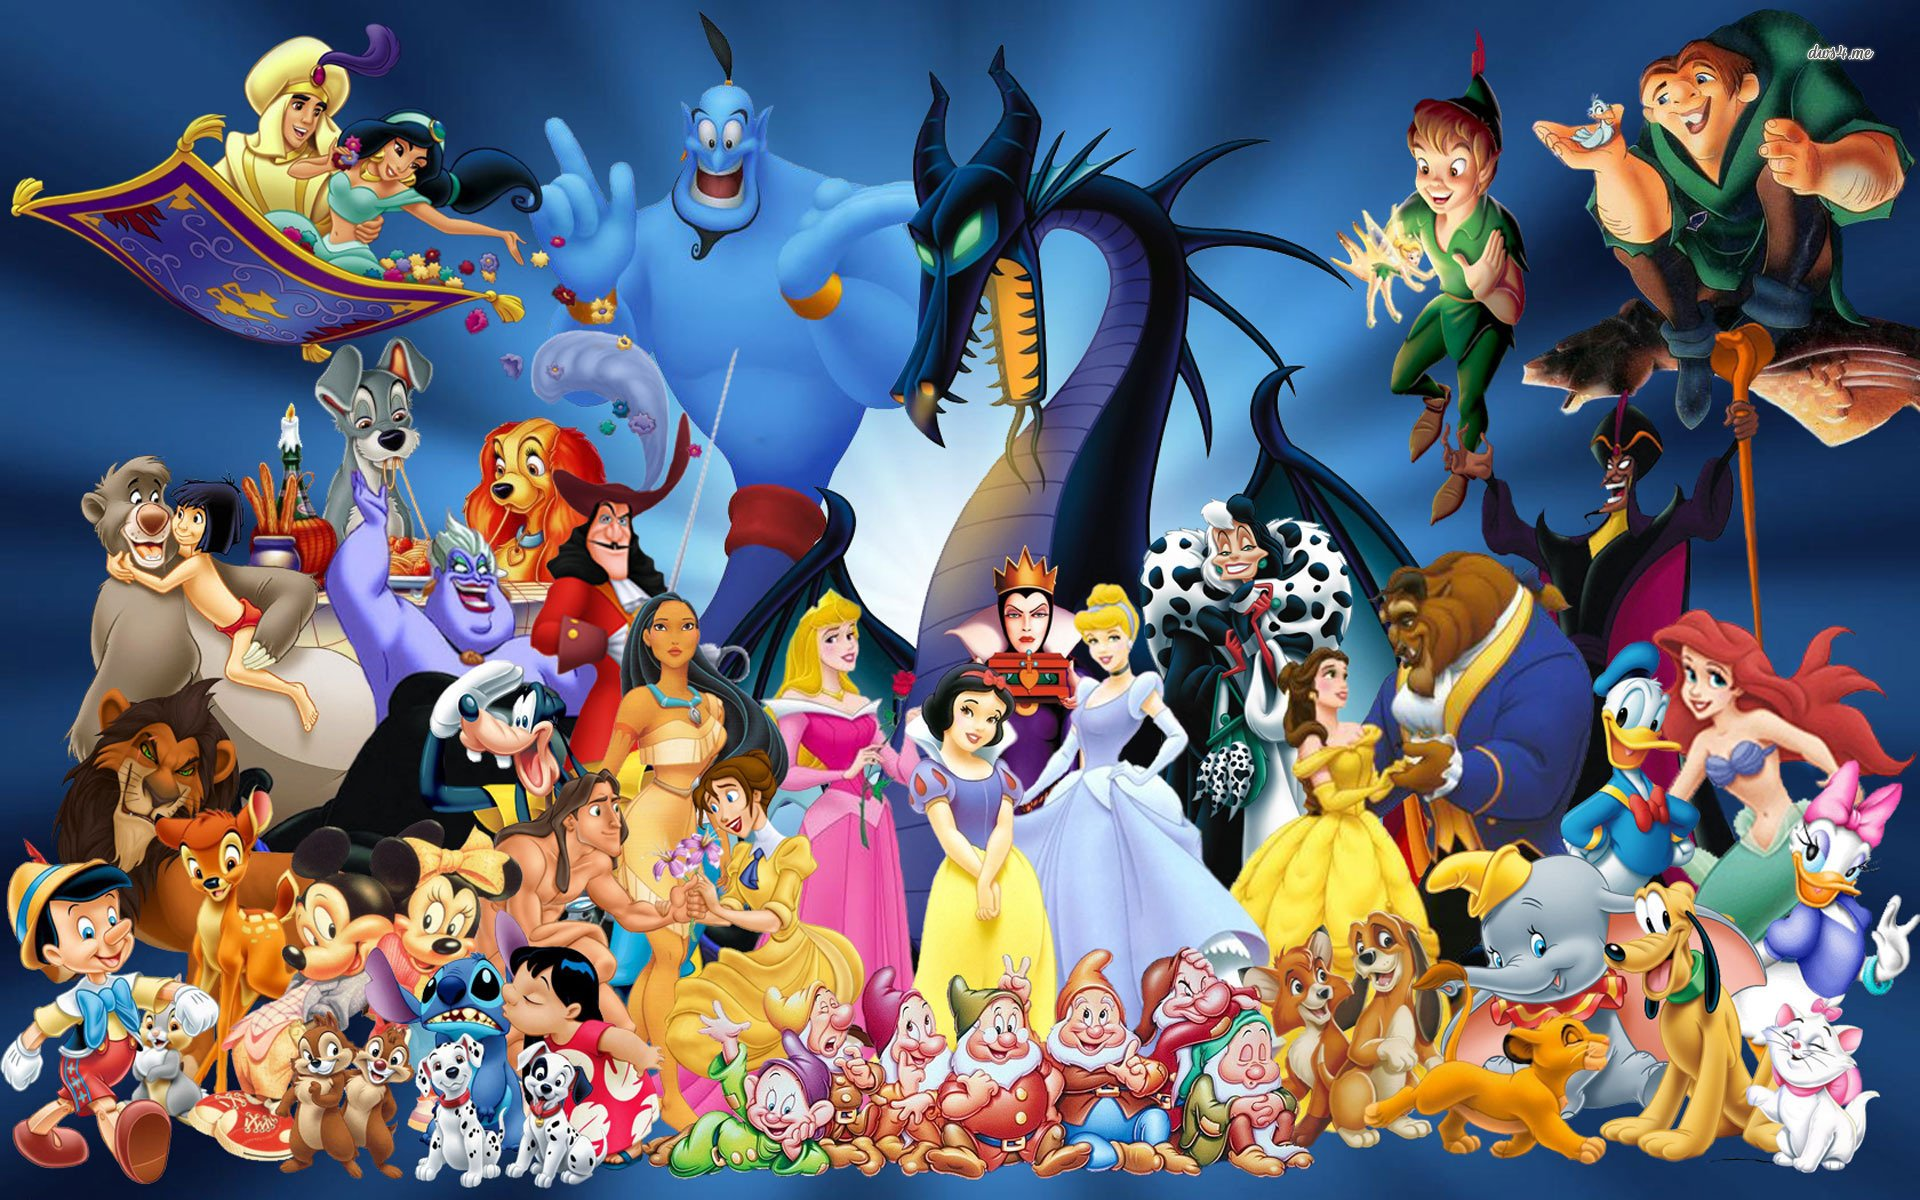 201 Disney HD Wallpapers Backgrounds Wallpaper Abyss